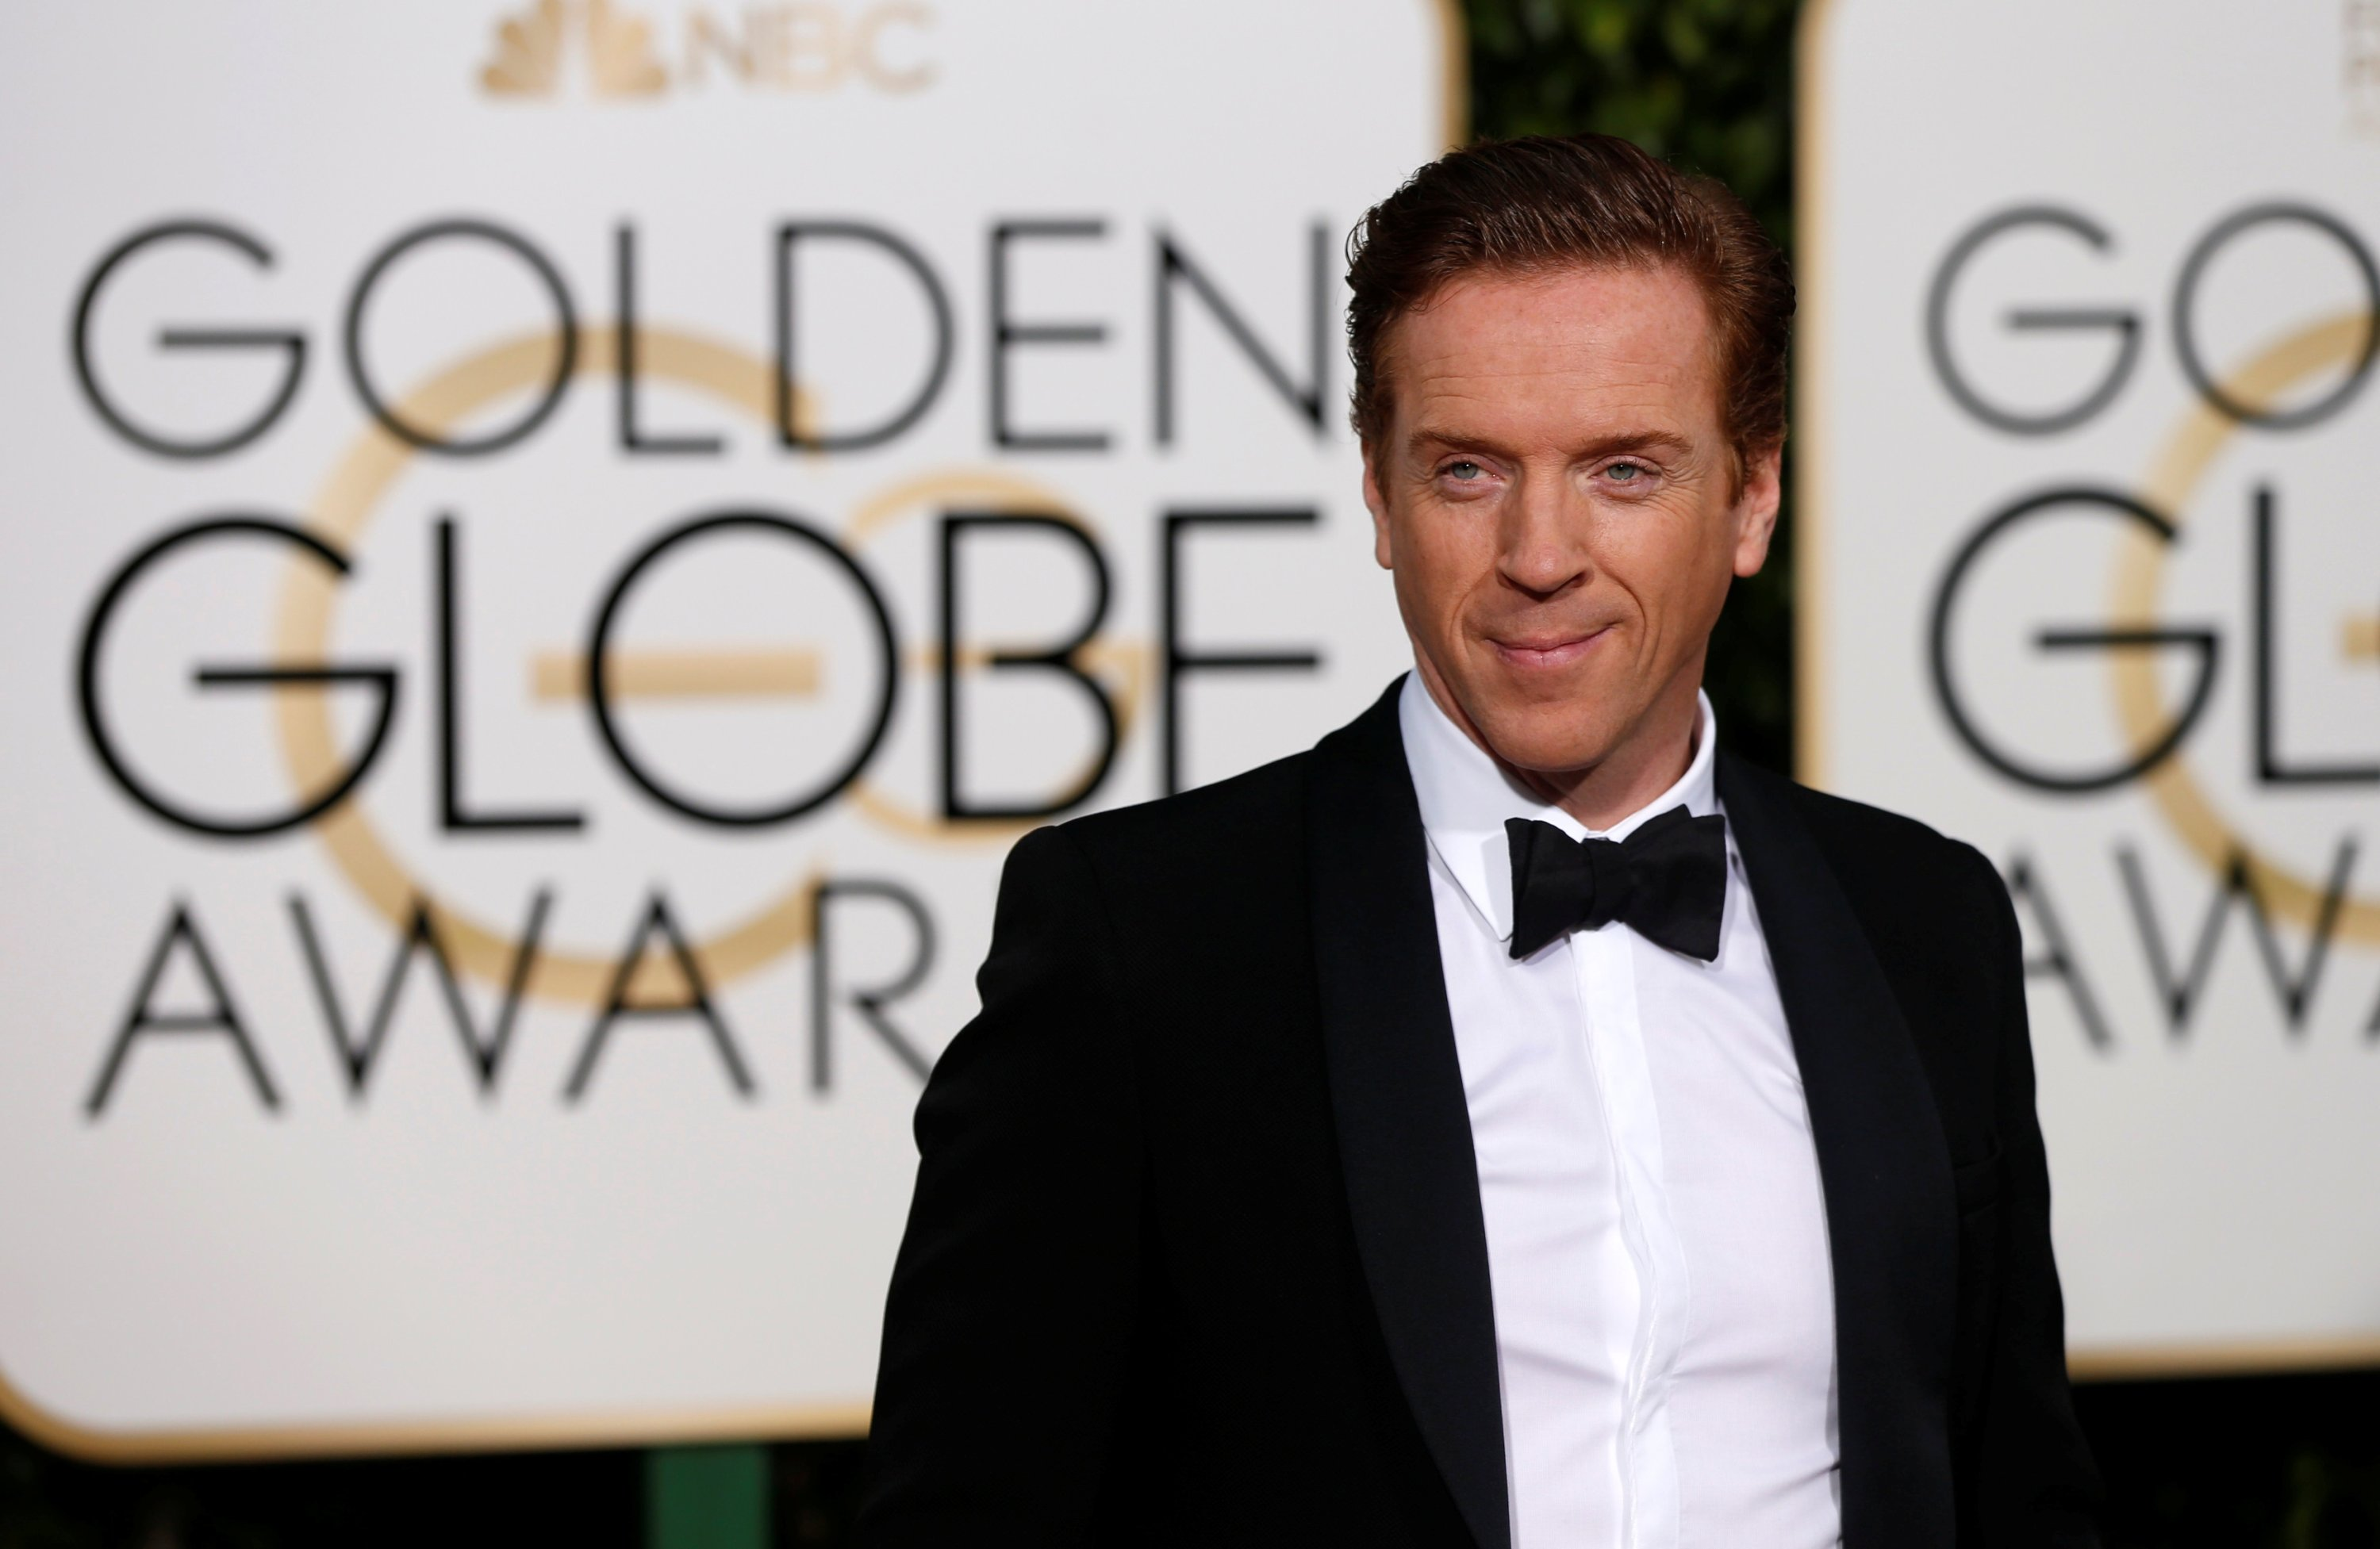 Actor Damian Lewis arrives at the 73rd Golden Globe Awards in Beverly Hills, California, U.S., Jan. 10, 2016. (Reuters Photo)